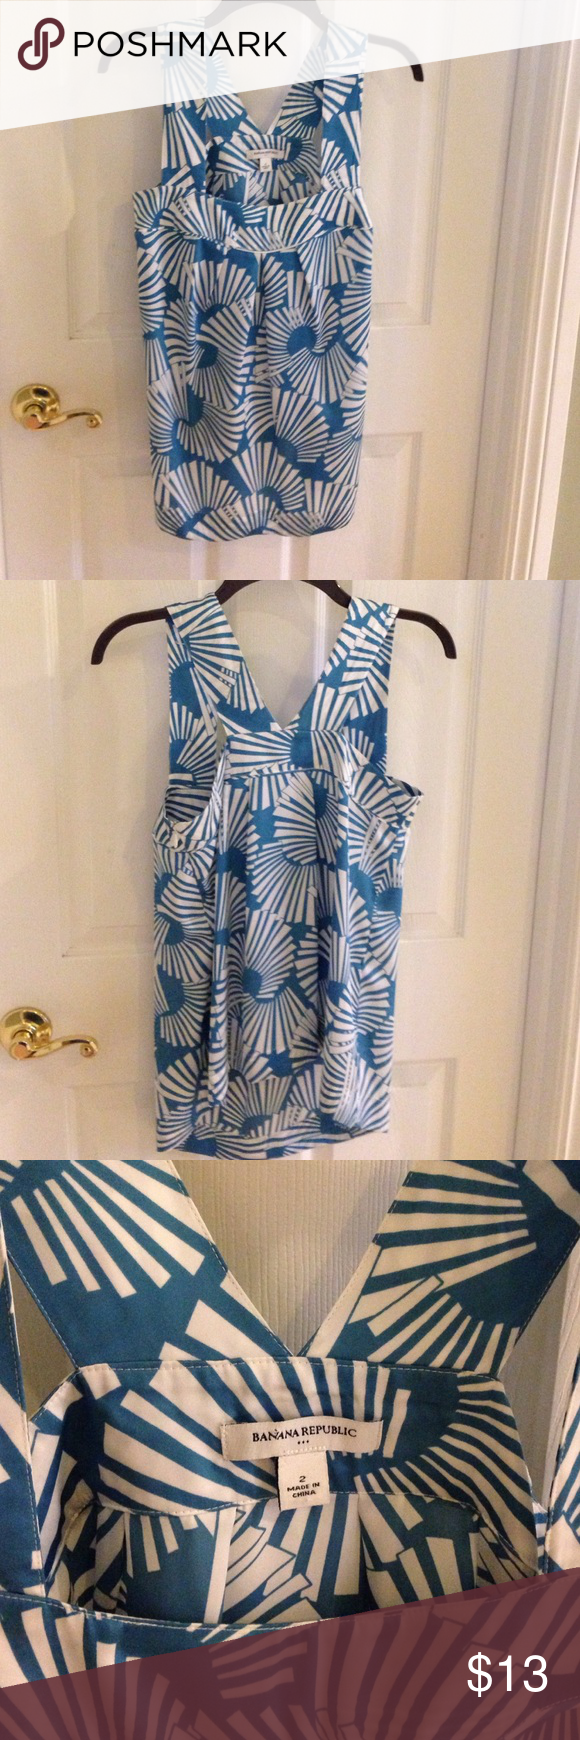 Summer blouse banana Republic Gorgeous blue and white sleeveless summer blouse made out of a soft cool polyester fabric.  Very easy care Banana Republic Tops Blouses